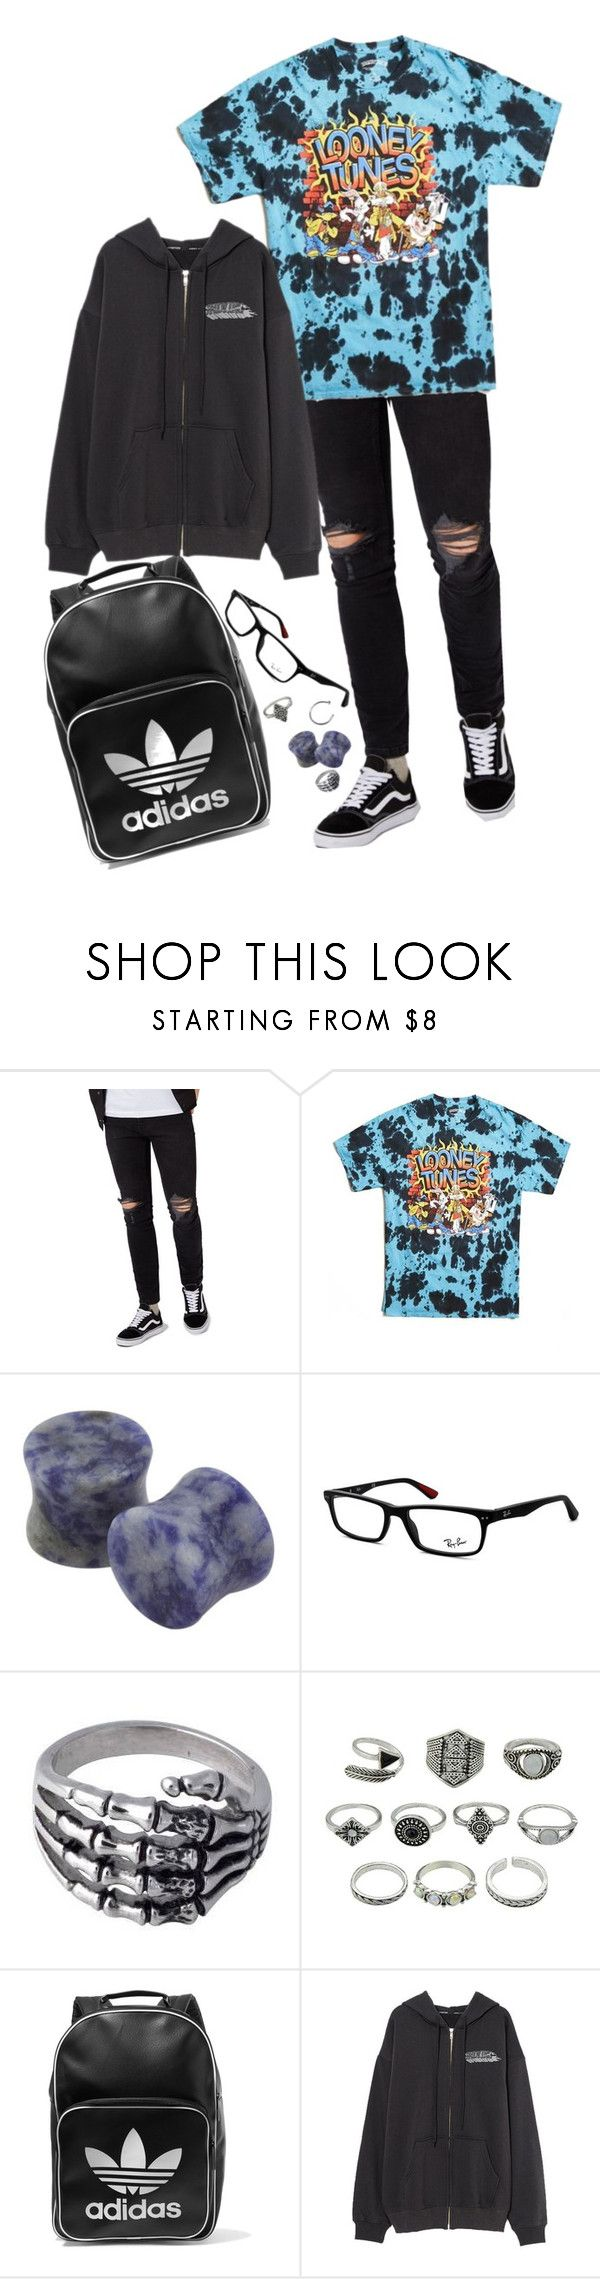 """im done with you"" by fall0uterin ❤ liked on Polyvore featuring Topman, 21 Men, Lazuli, Ray-Ban, Anello and adidas Originals"